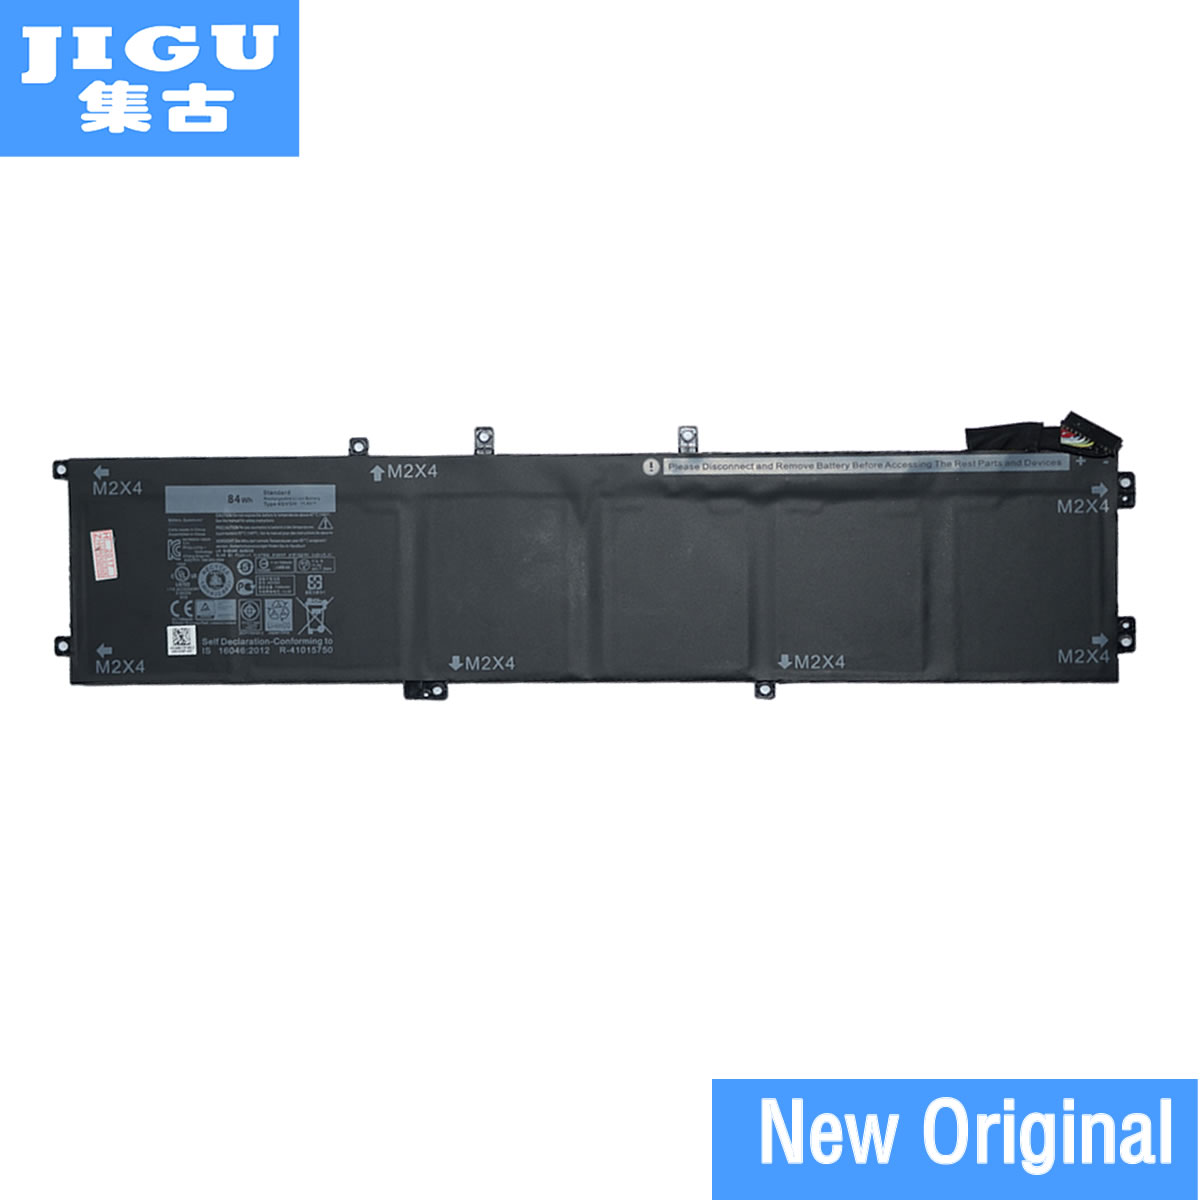 JIGU Original Laptop Battery 1P6KD 4GVGH RRCGW FOR DELL For Precision 5510 XPS 15 9550 садовый райдер газонокосилка mtd minirider 60 sde